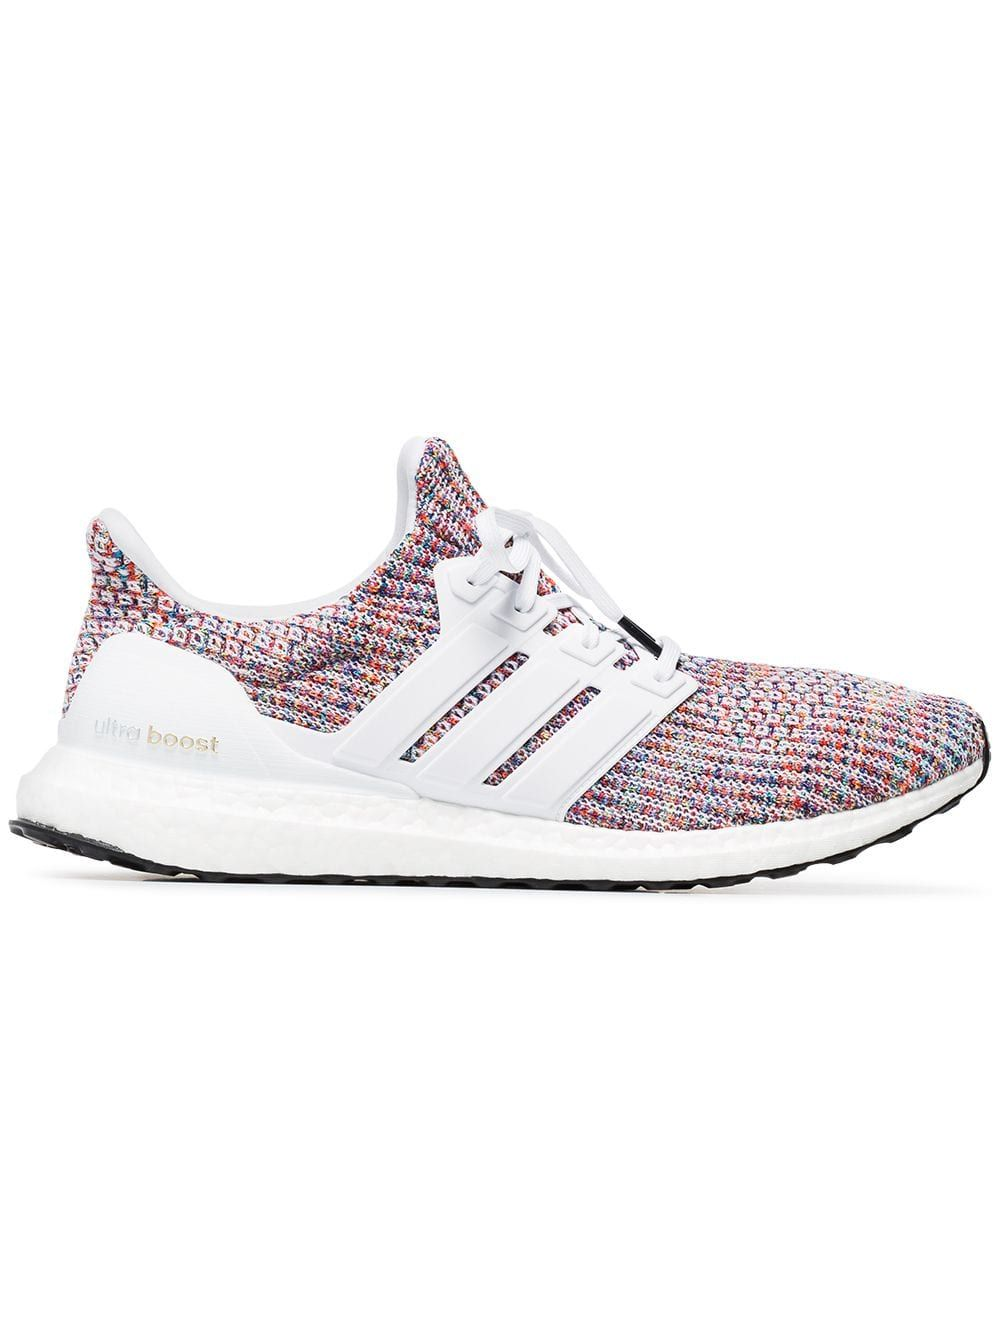 the latest efc9a 22373 ADIDAS ORIGINALS ADIDAS ADI ULTRABOOST SNKR RED WHT - MULTICOLOUR.  adidasoriginals shoes